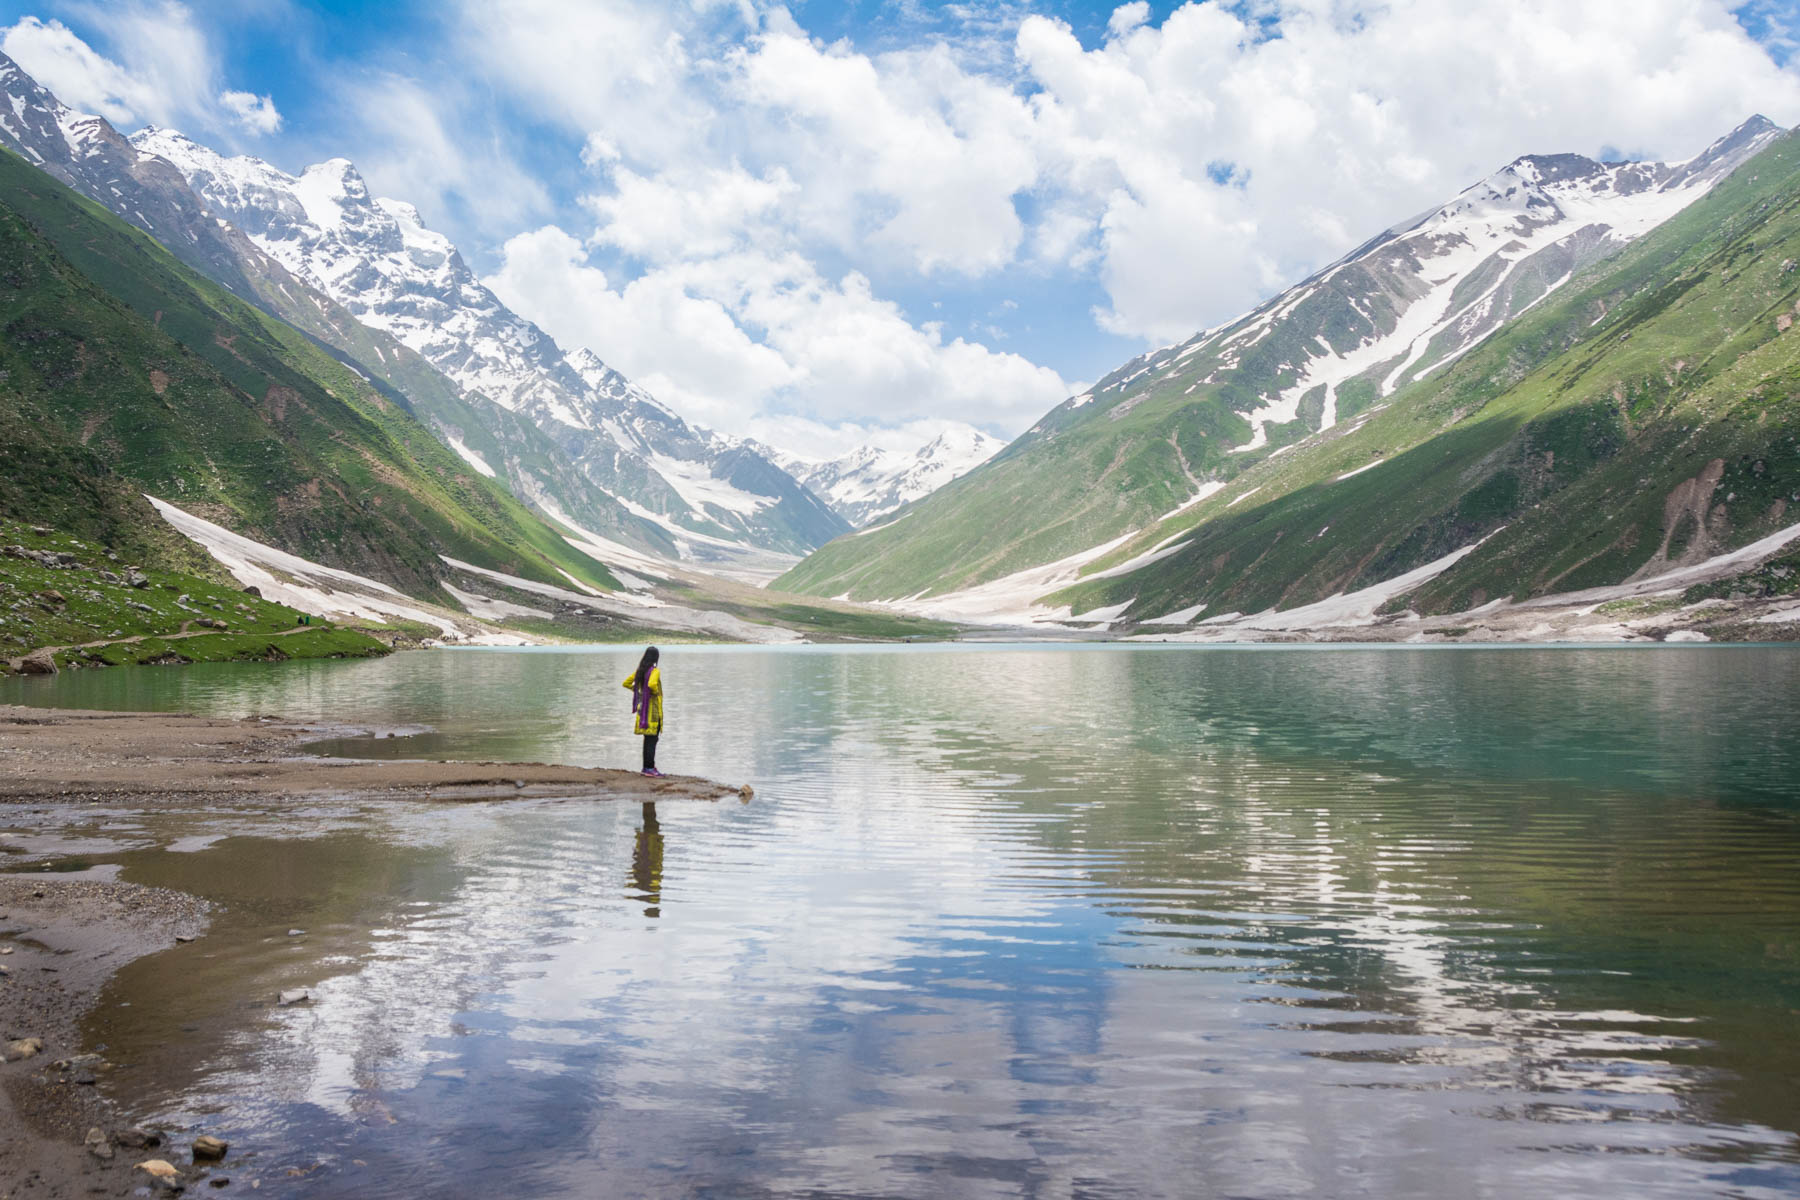 Is it safe for women to travel in Pakistan? - Female traveling to Saif al Muluk lake in northern Pakistan - Lost With Purpose